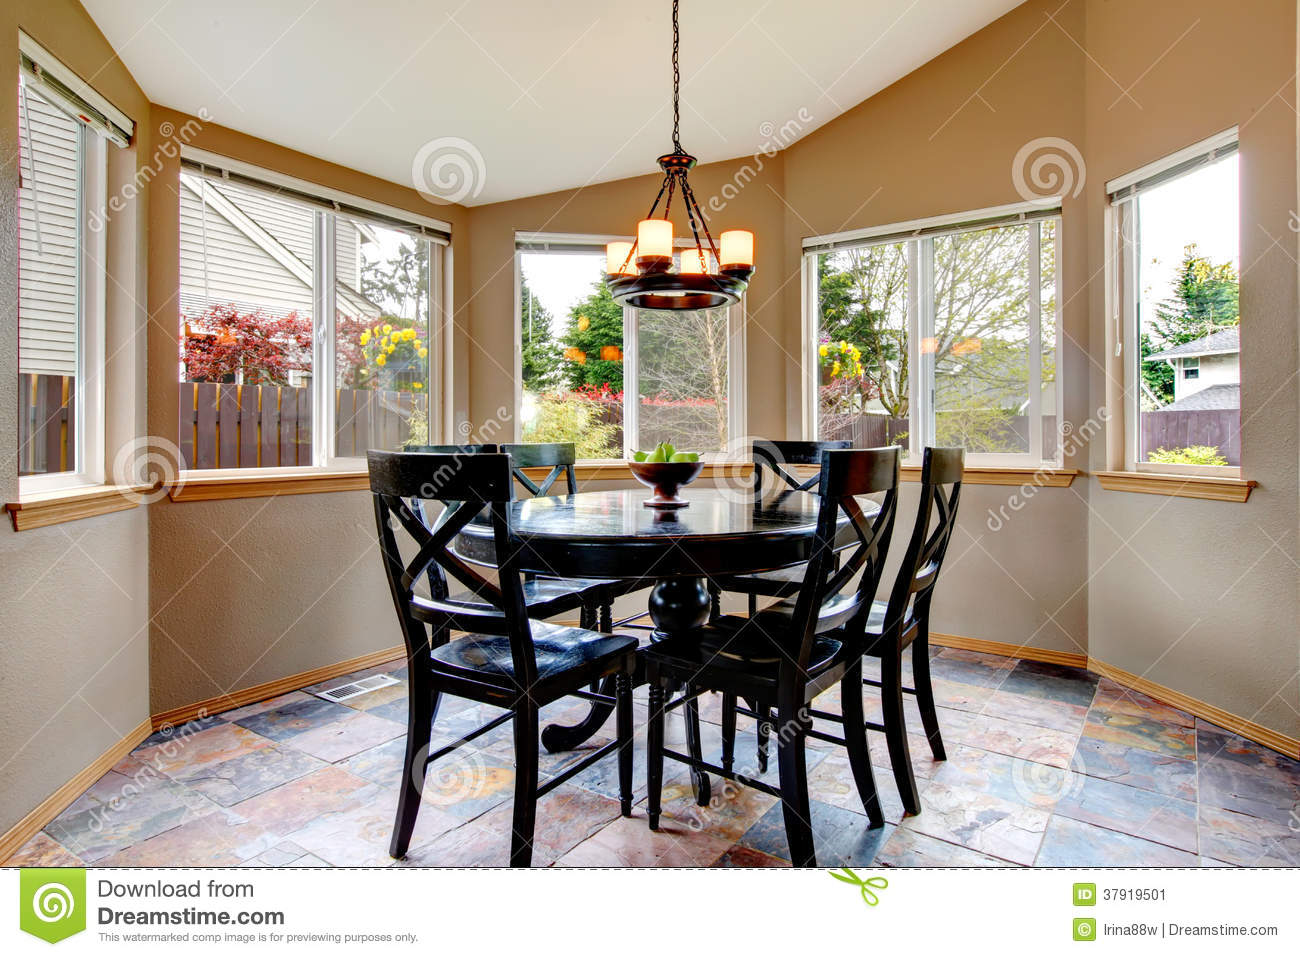 breakfast table and chairs set rifton feeding chair beighe round corner dining room stock image - of idea, apartment: 37919501